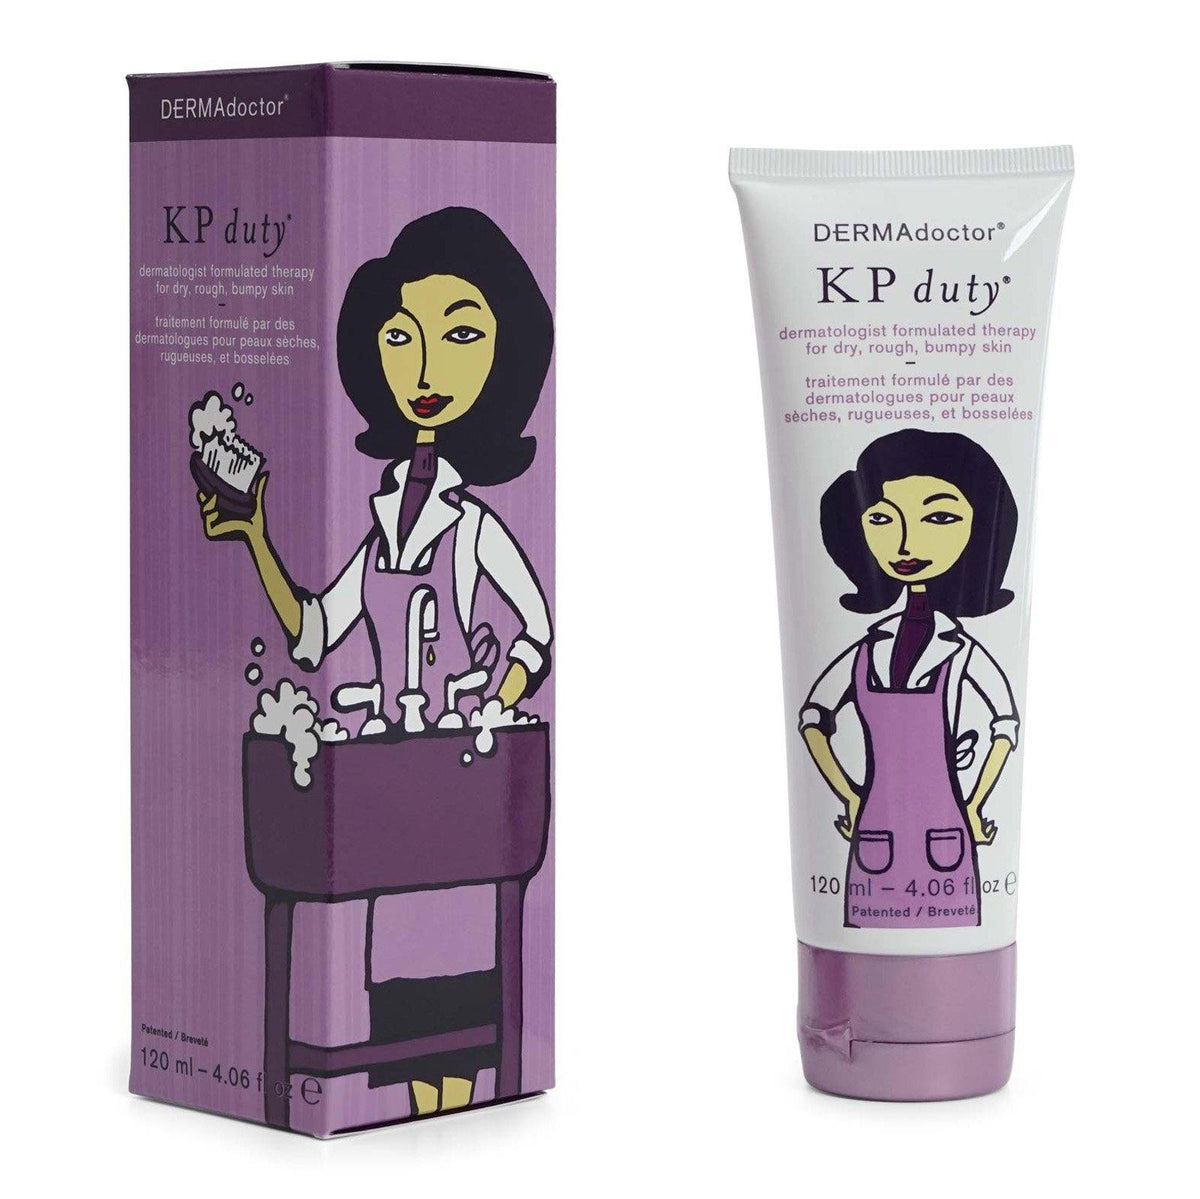 DermaDoctor KP Duty Dermatologist Formula AHA Moisturizing Therapy - improve dry appearance, rough, bumpy skin. Dye Free (12/cs)